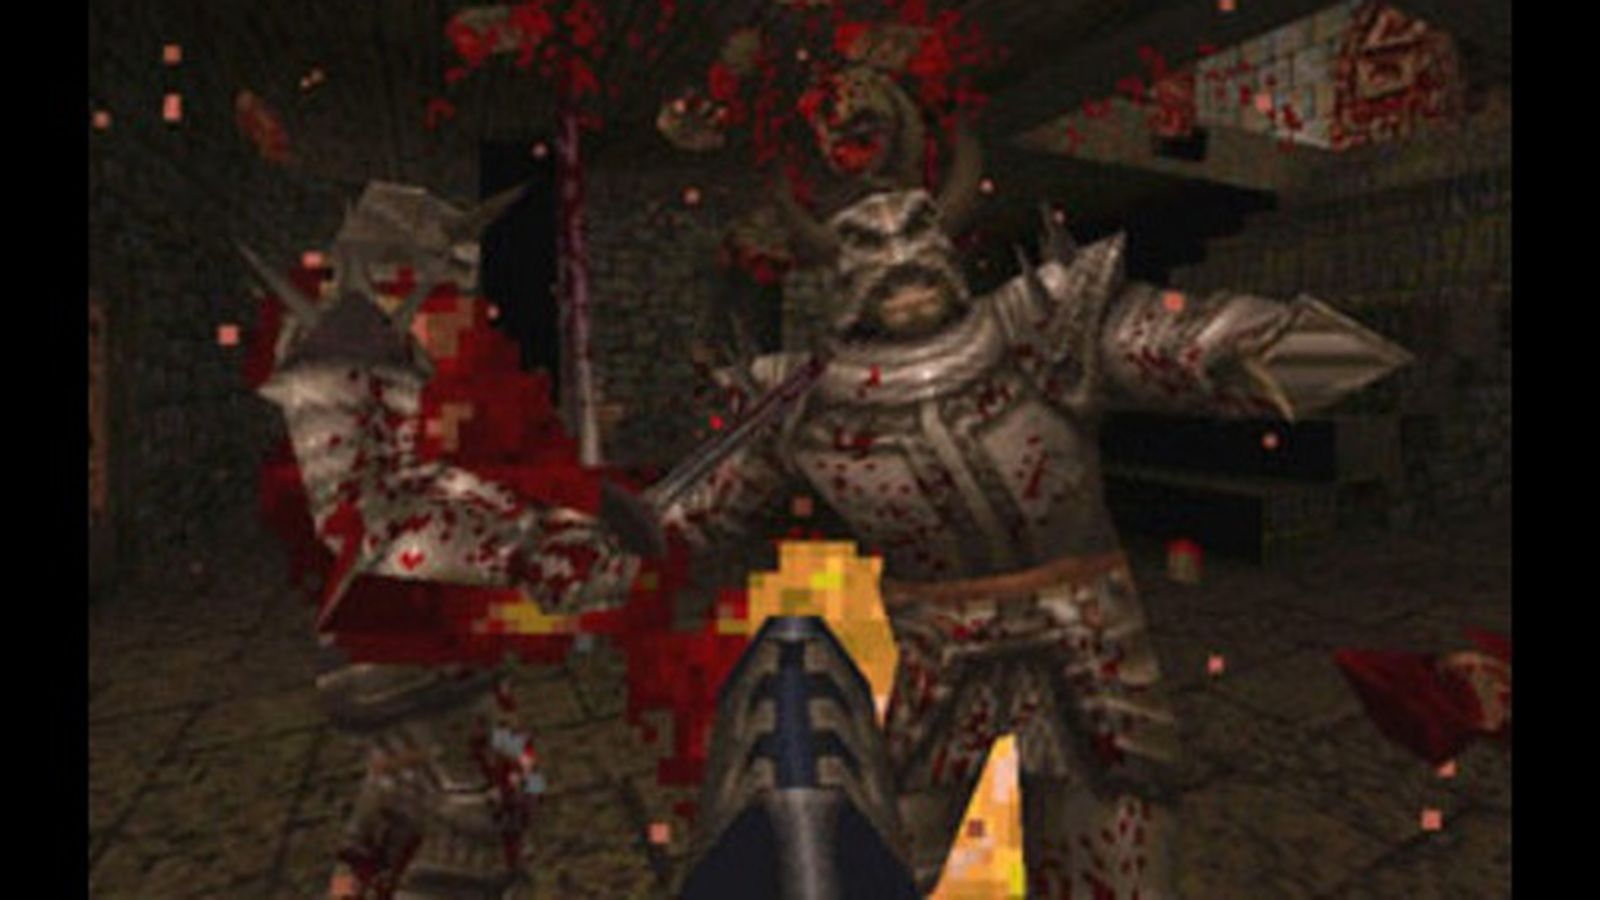 Moon Wallpaper Hd Play A New Episode For Old Quake From The Wolfenstein The